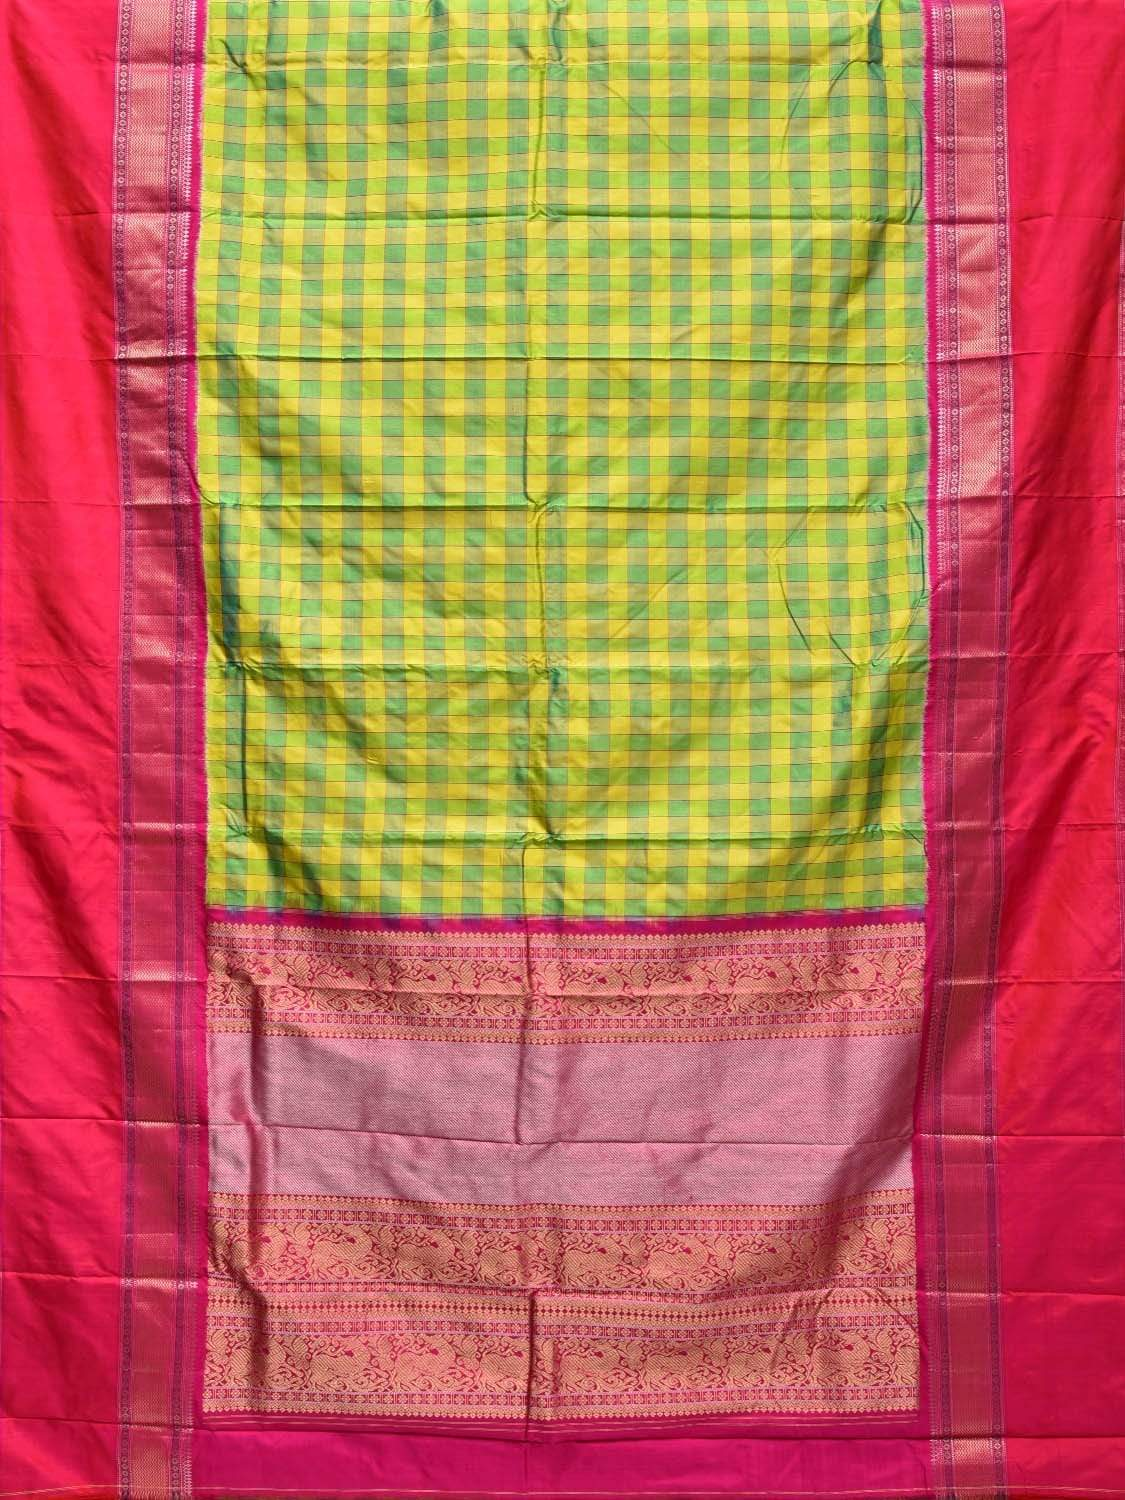 Green and Pink Pochampally Single Ikat Silk Handloom Saree with Kanchipuram Style Design i0559